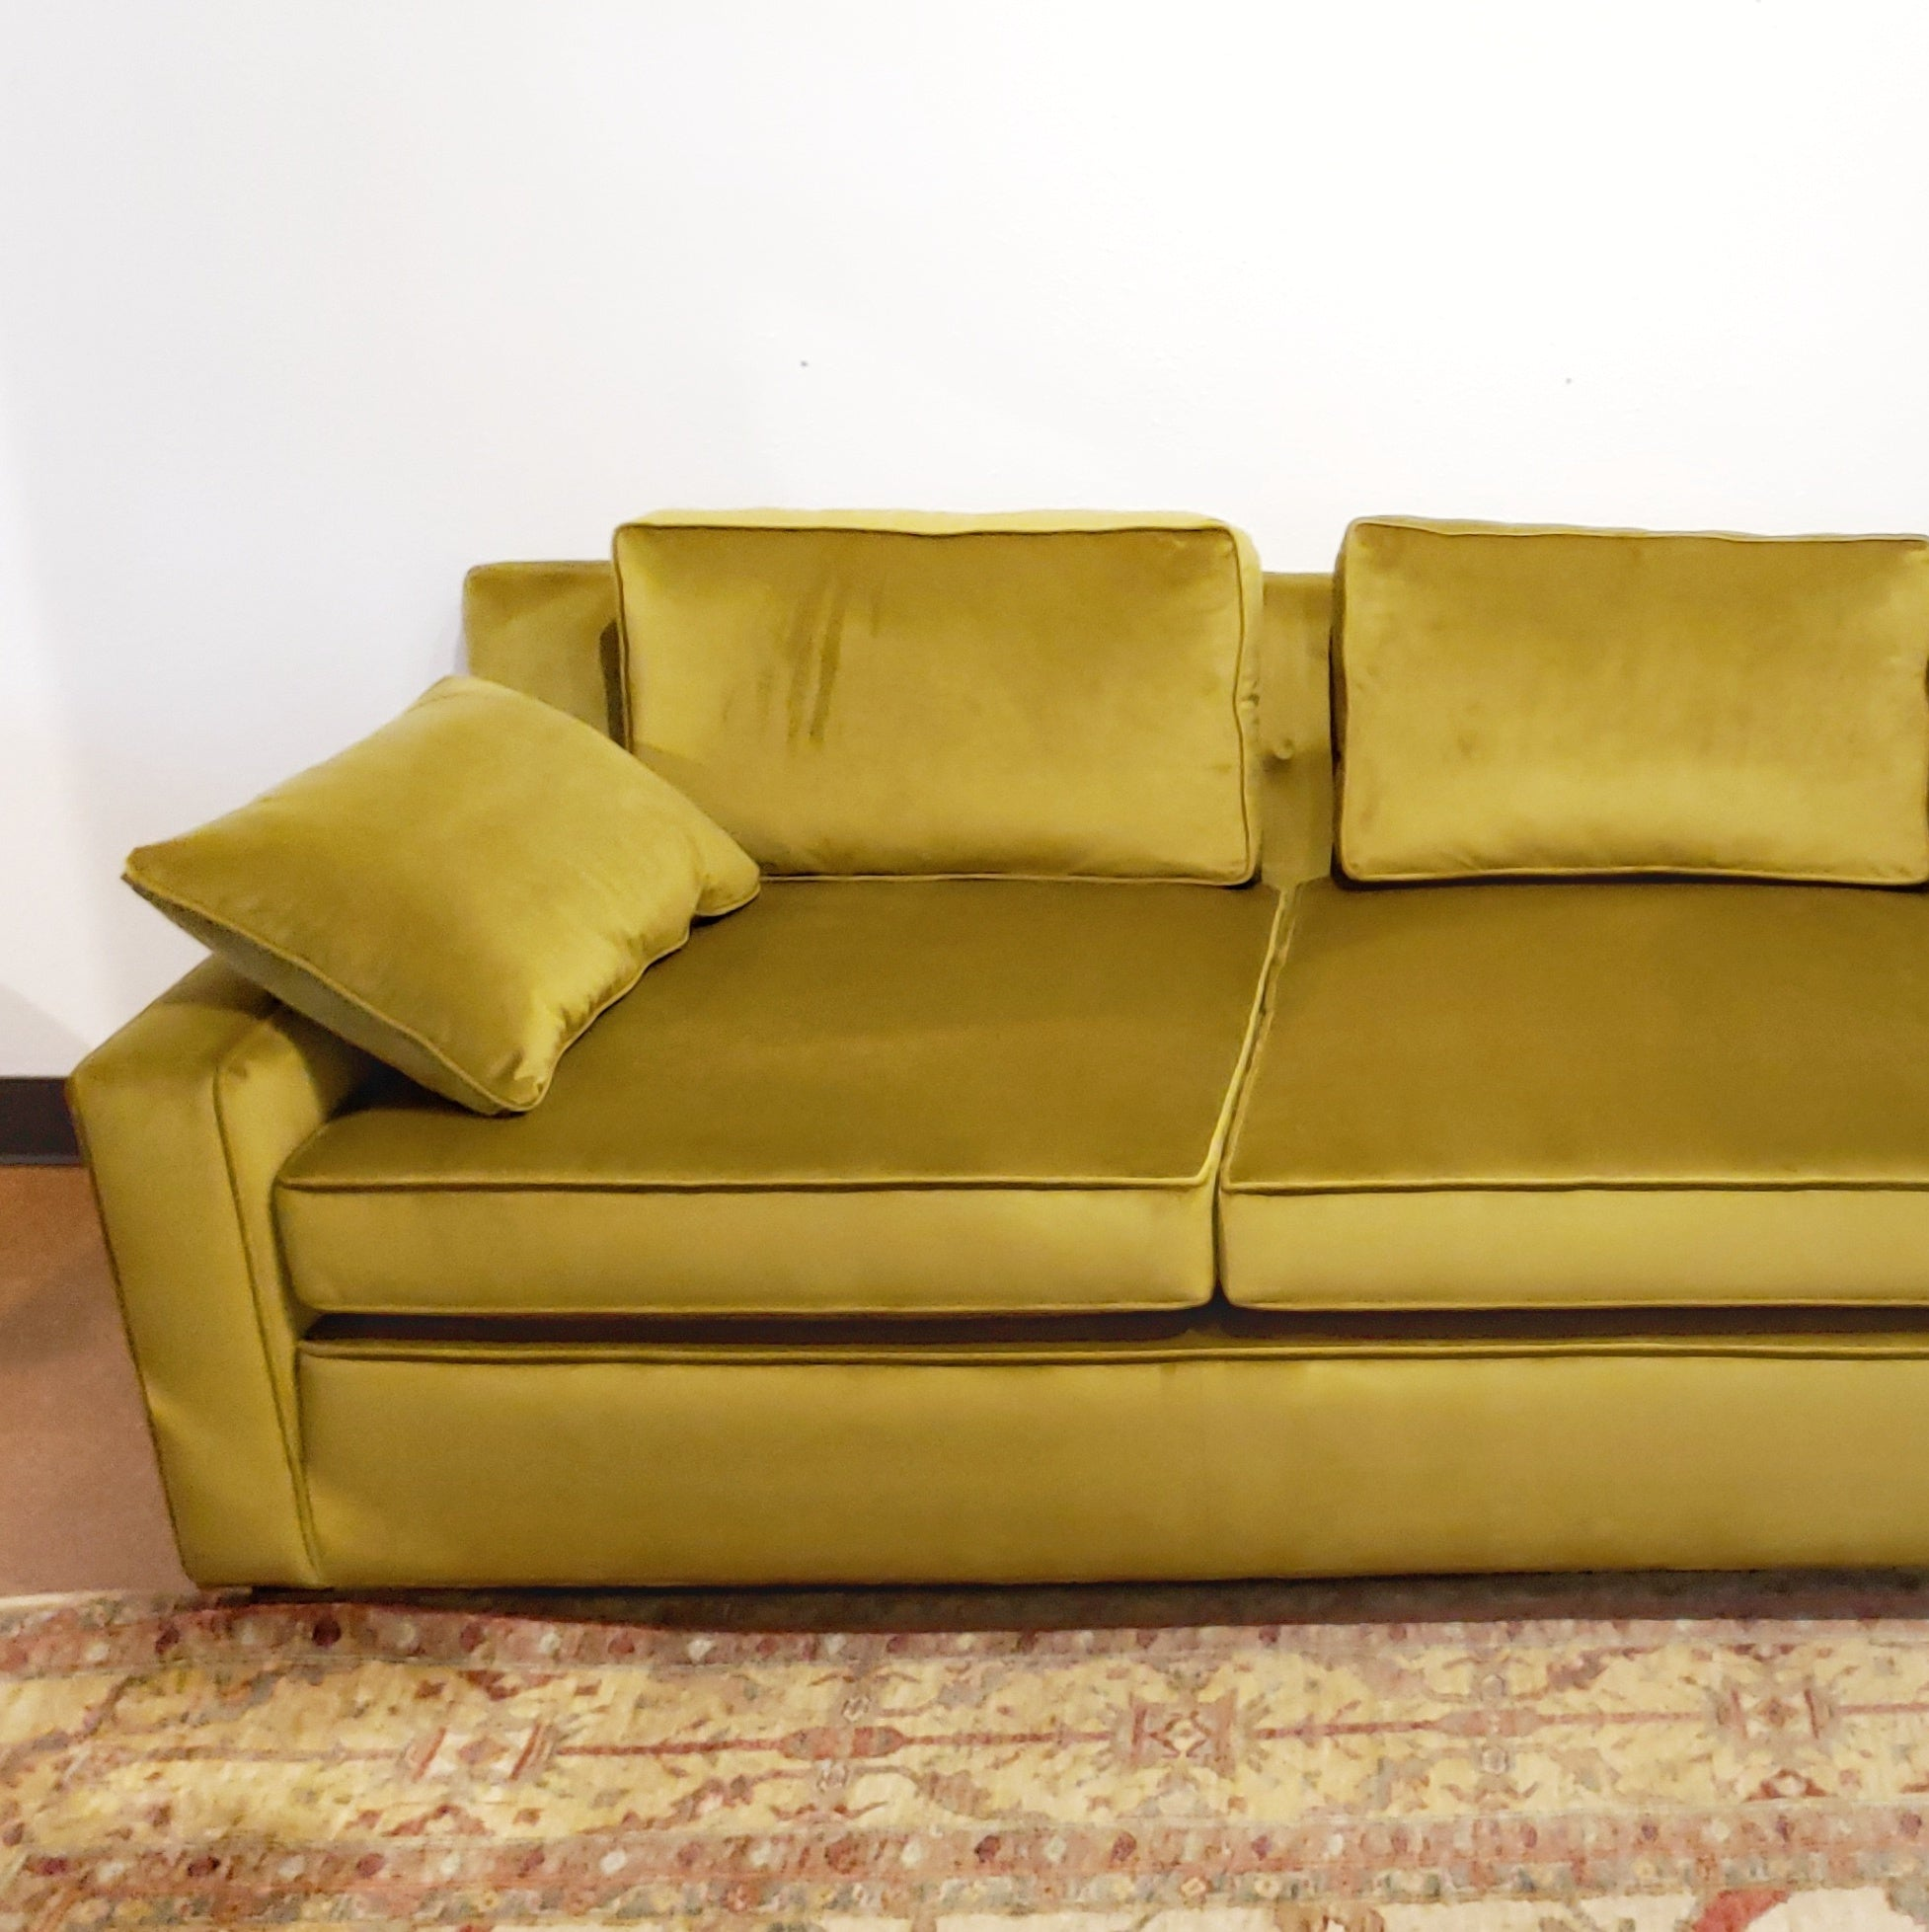 EDWARD WORMLEY SOFA 4625 FOR DUNBAR